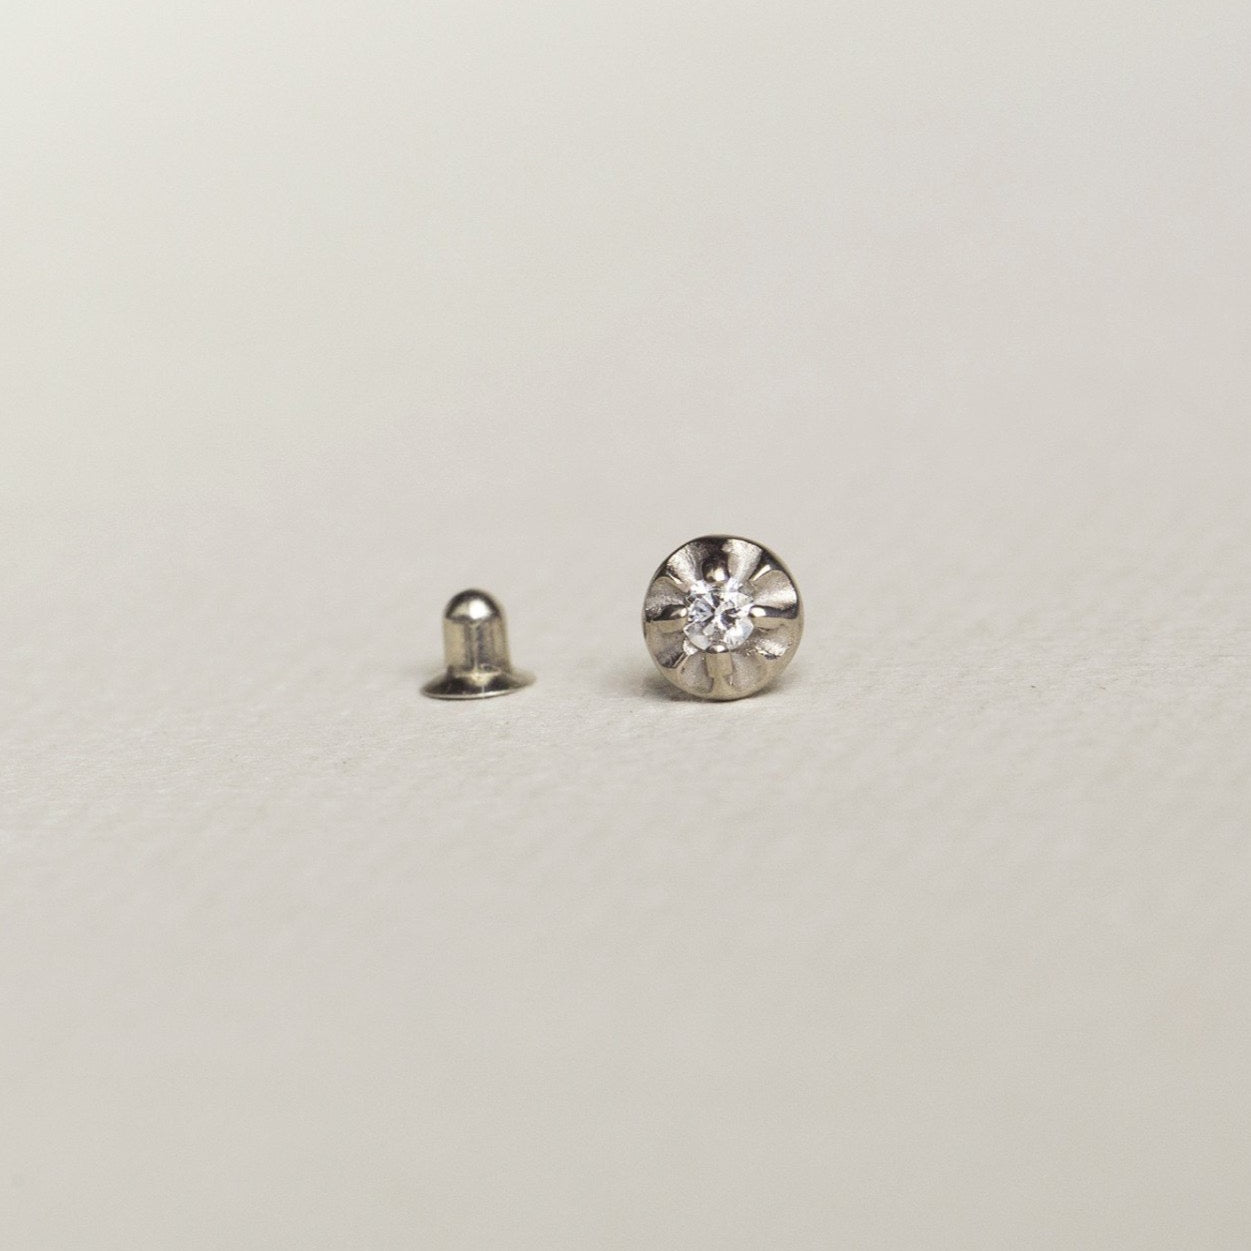 White Gold and White Diamond Starburst Earring